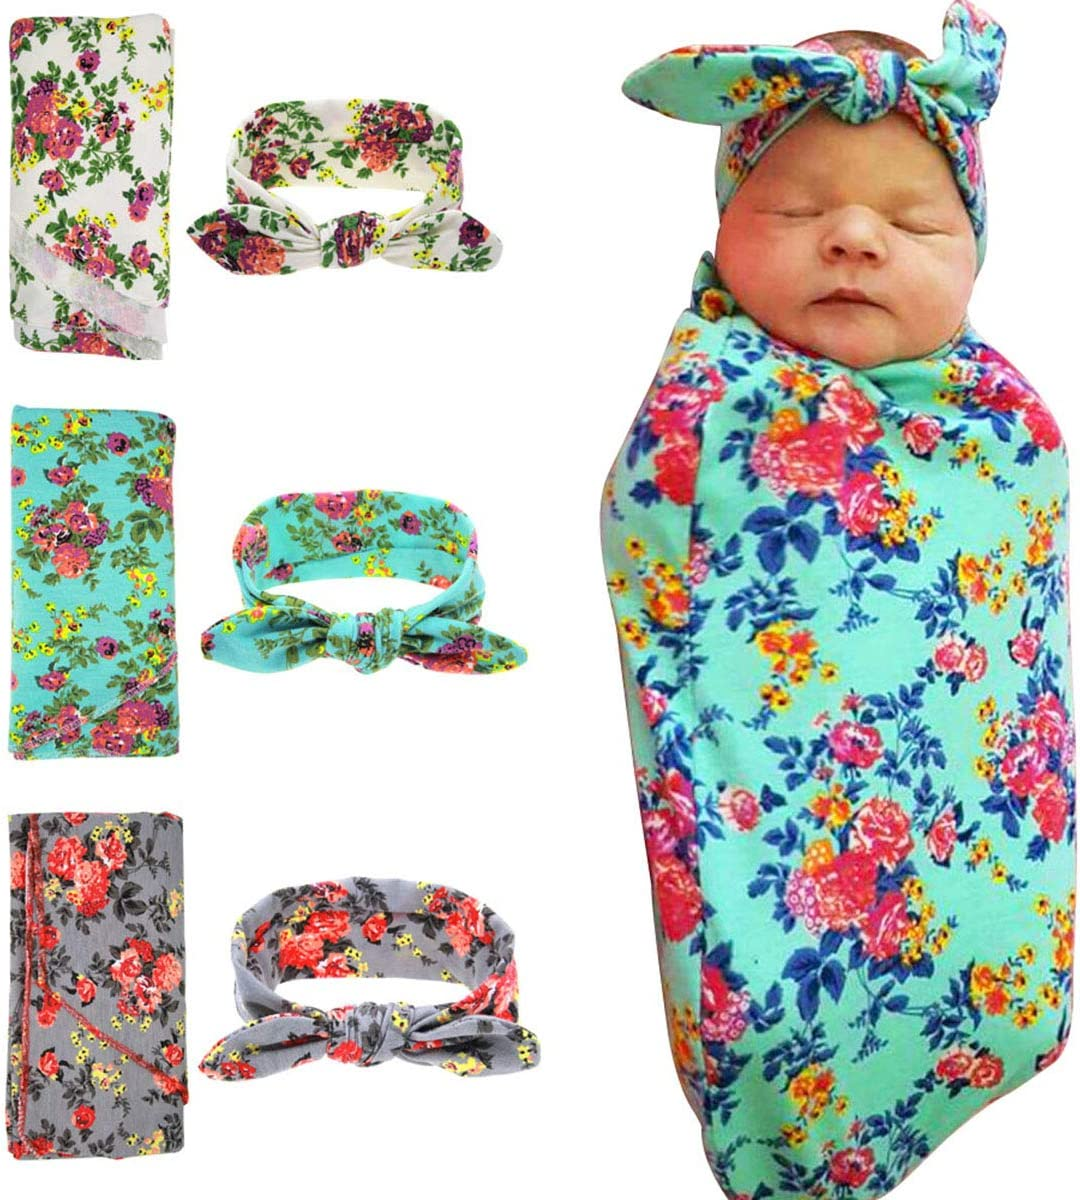 green HoveBeaty Newborn Receiving Blanket Headband Set Knitted Cotton Swaddle Blankets Flower Print Baby Infants Wrapped Blankets